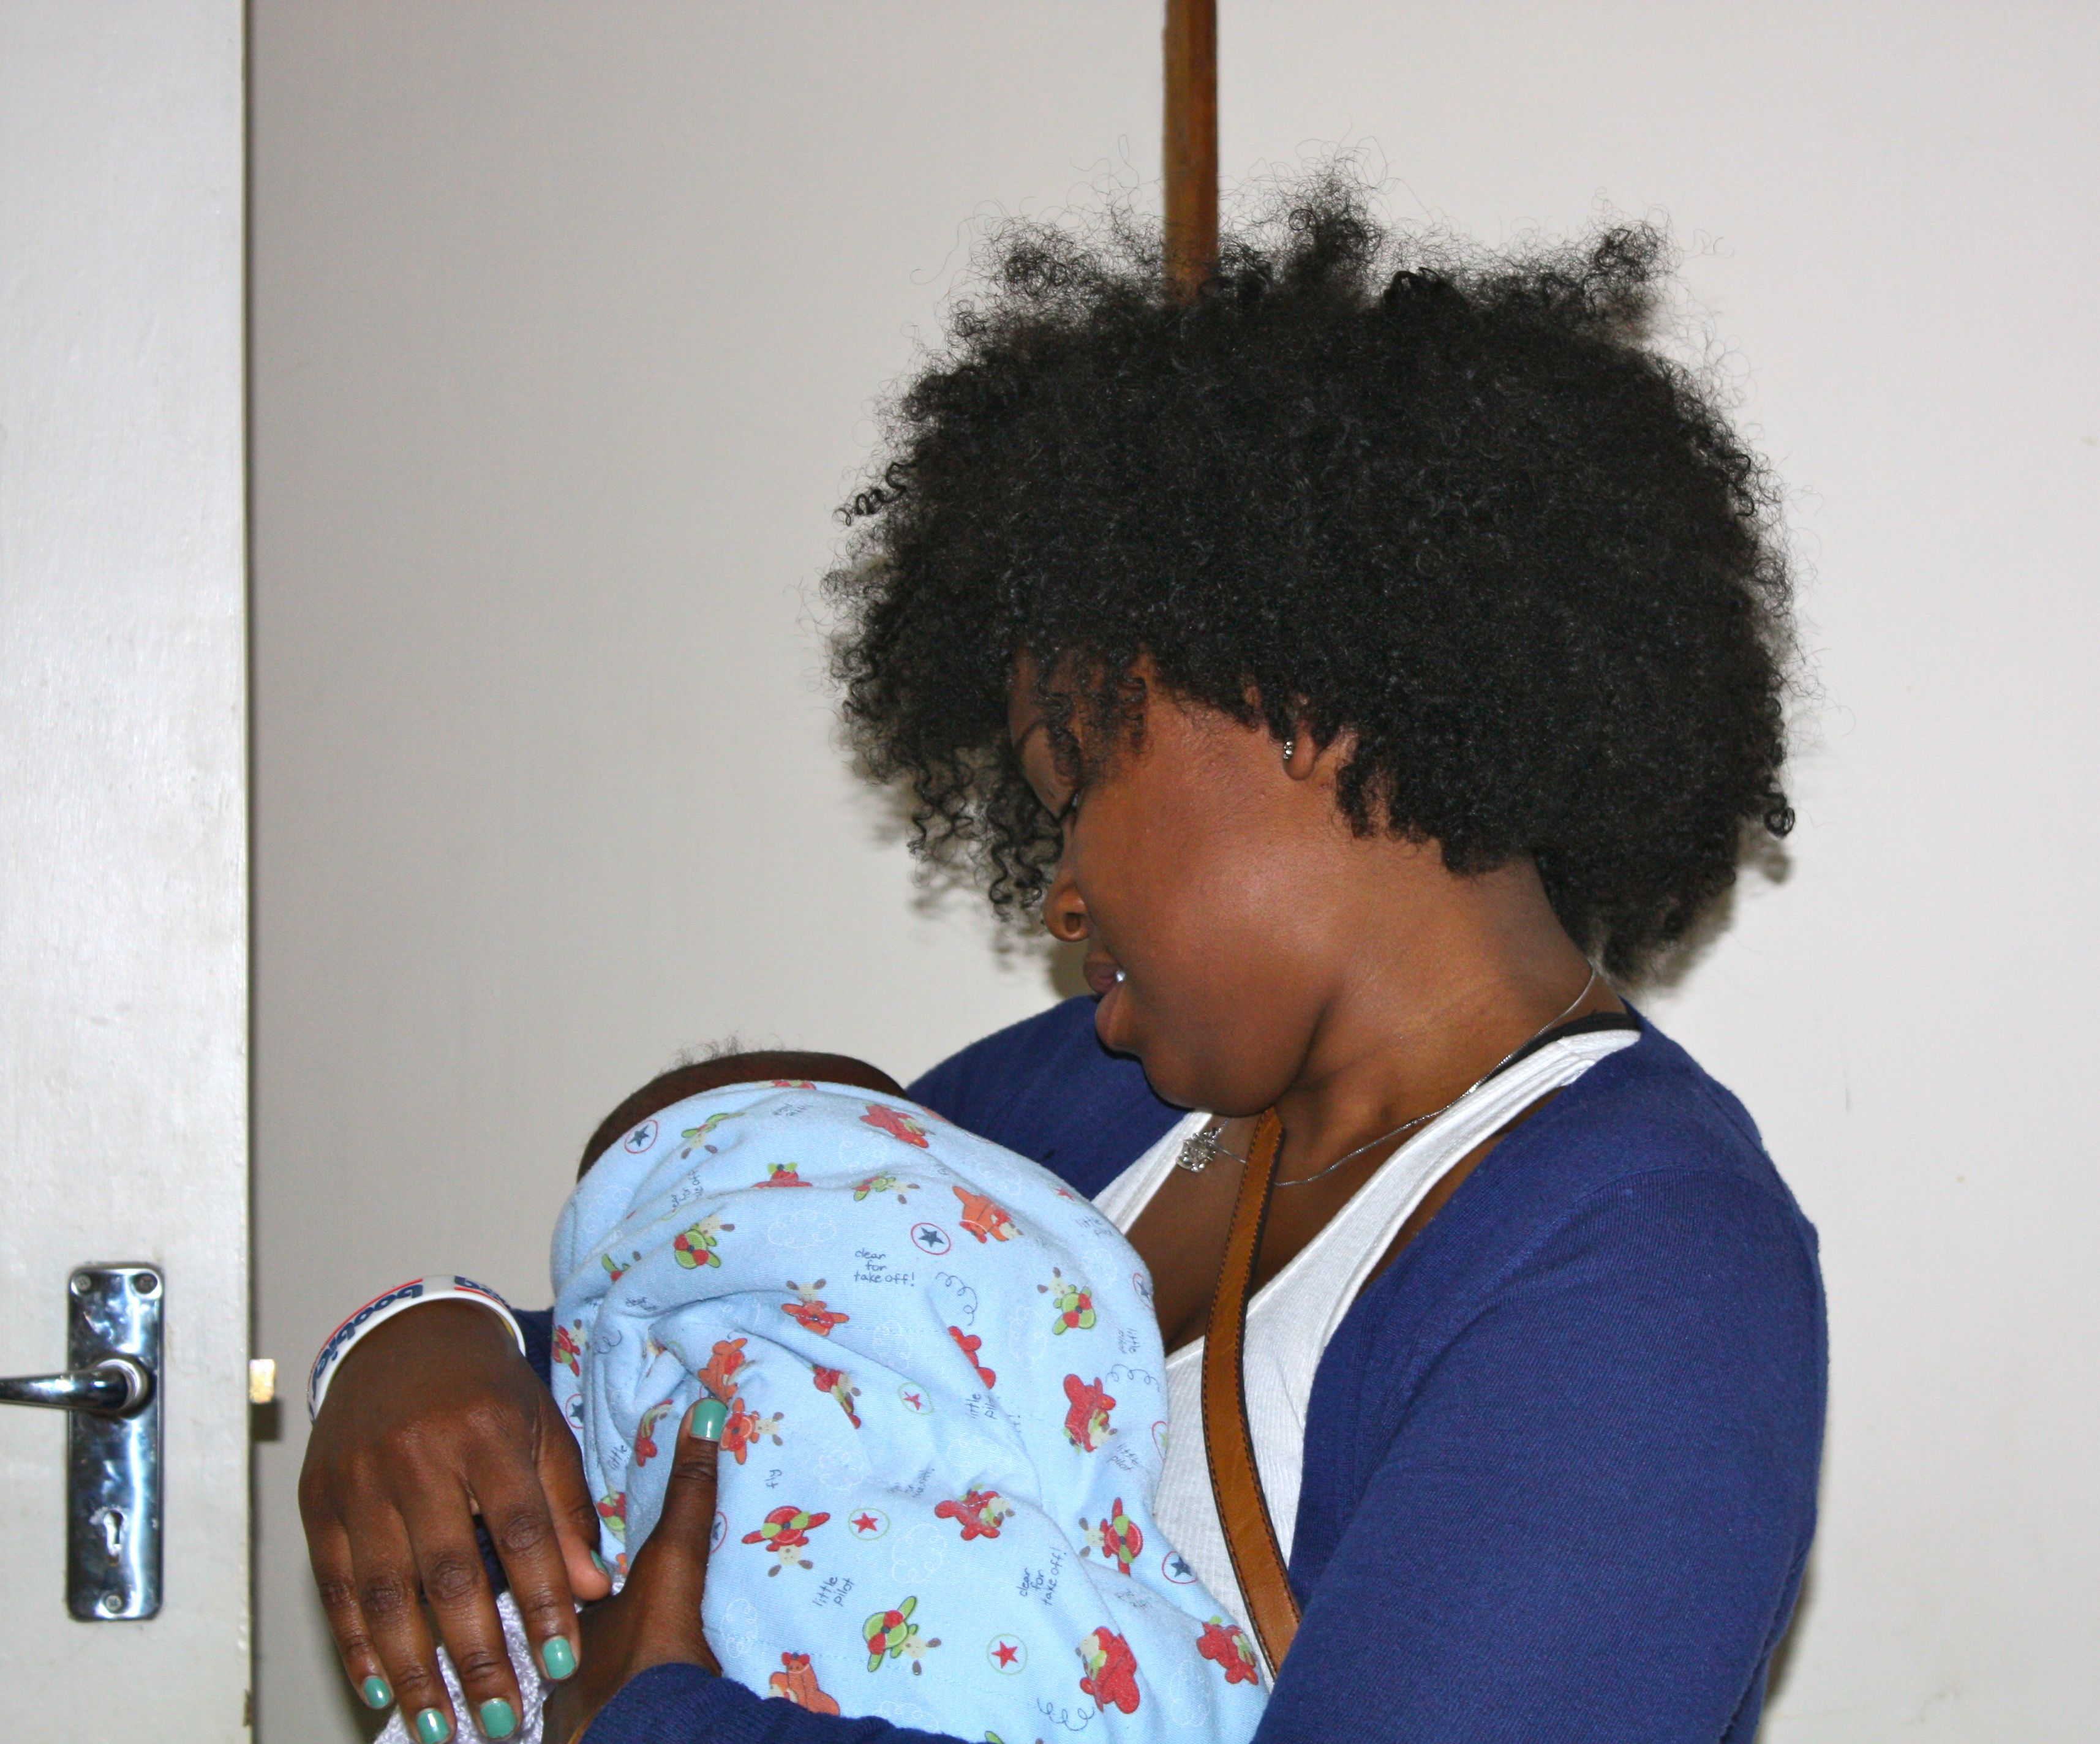 Interns can visit the Crisis Nursery to play with young babies in the care of the government